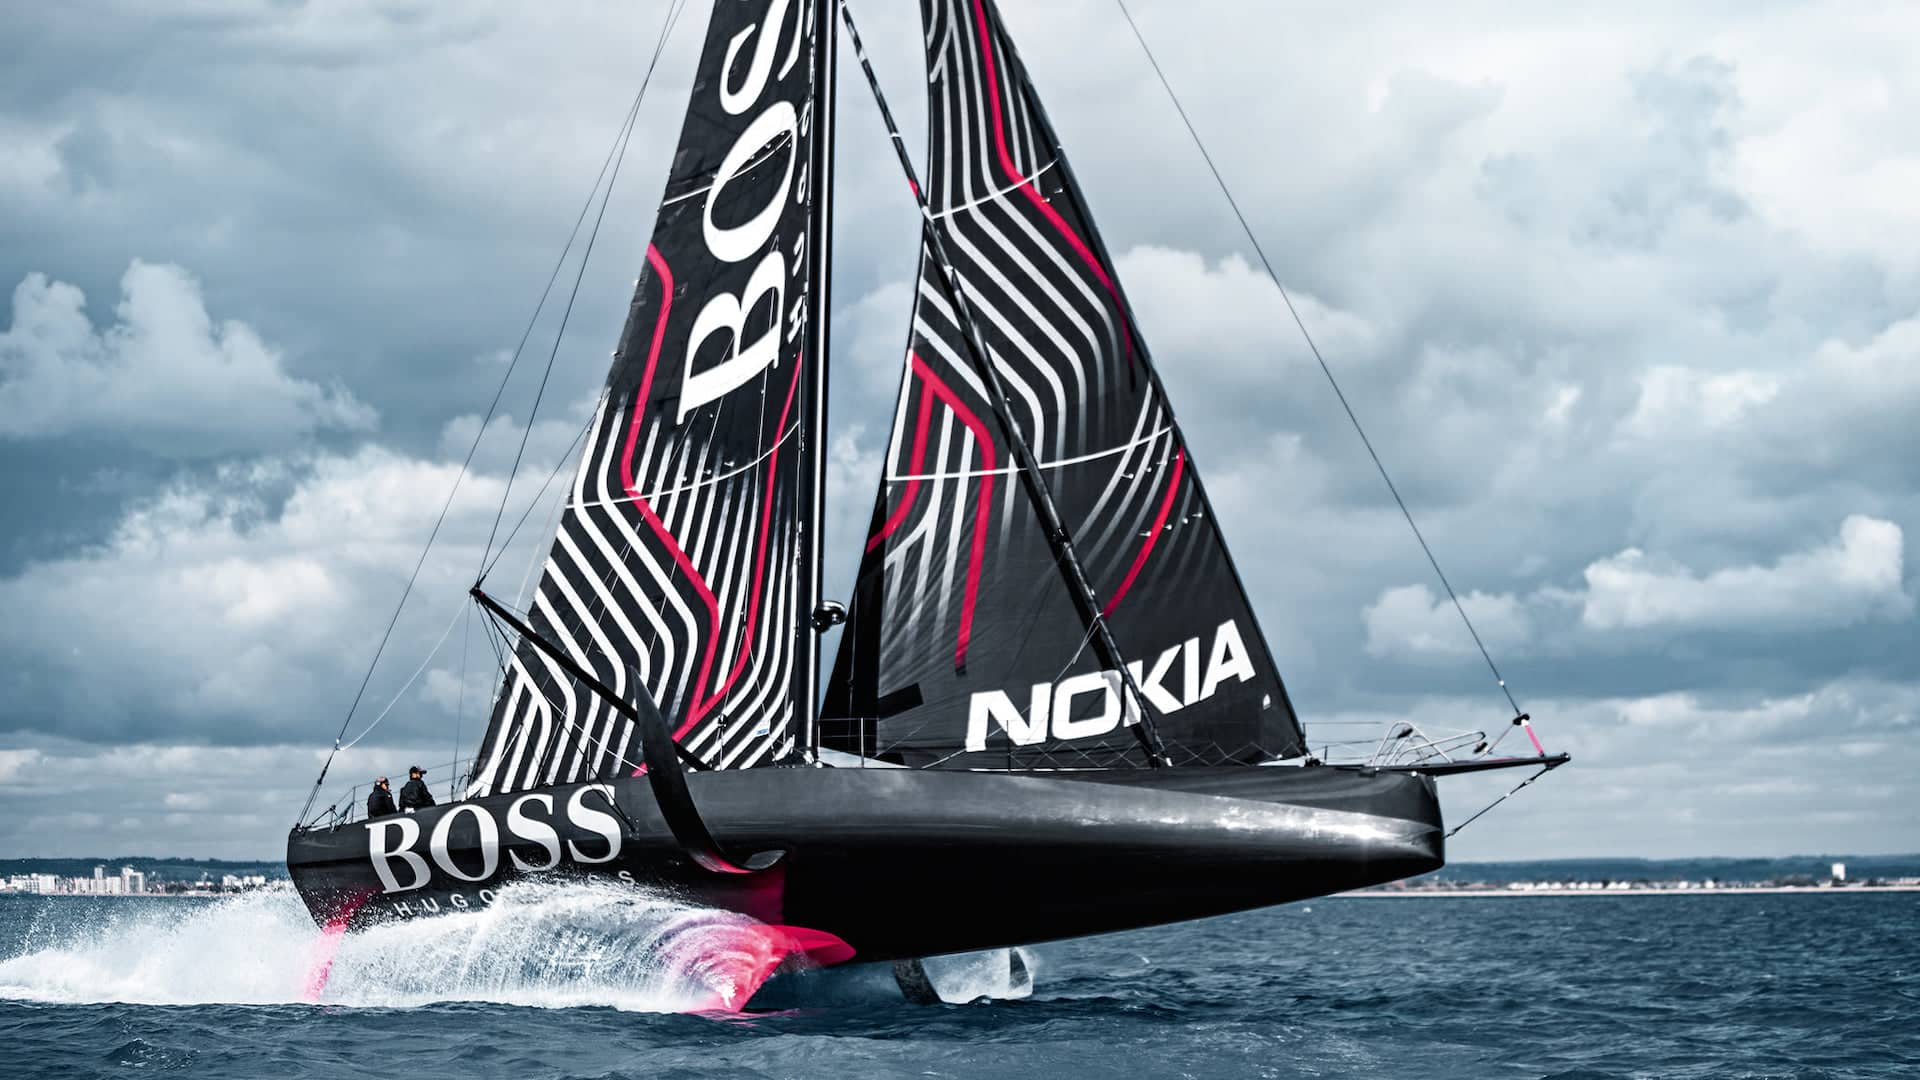 Hugo Boss keeldamage during Transat Jacques Vabre.